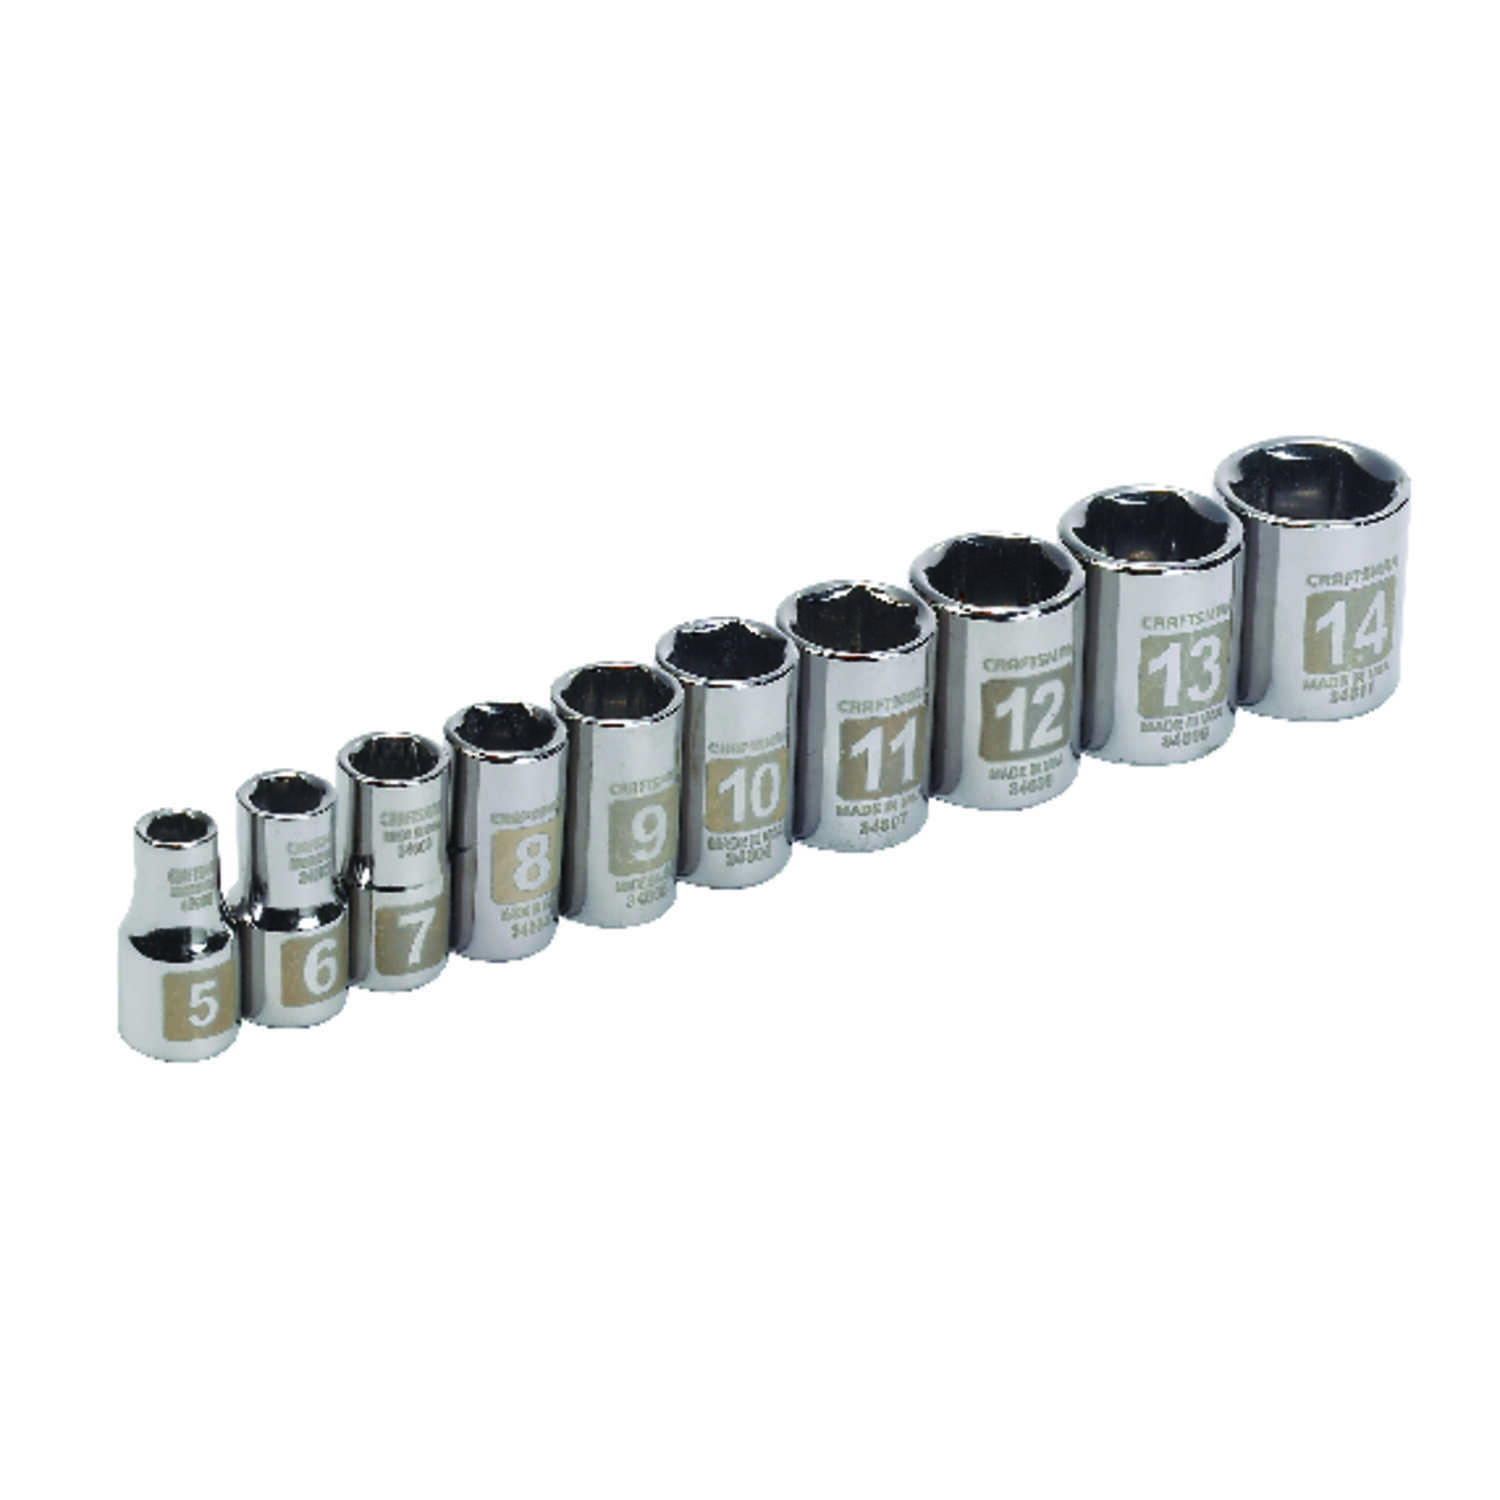 Craftsman  14 mm  x 1/4 in. drive  Metric  6 Point Socket Set  10 pc.